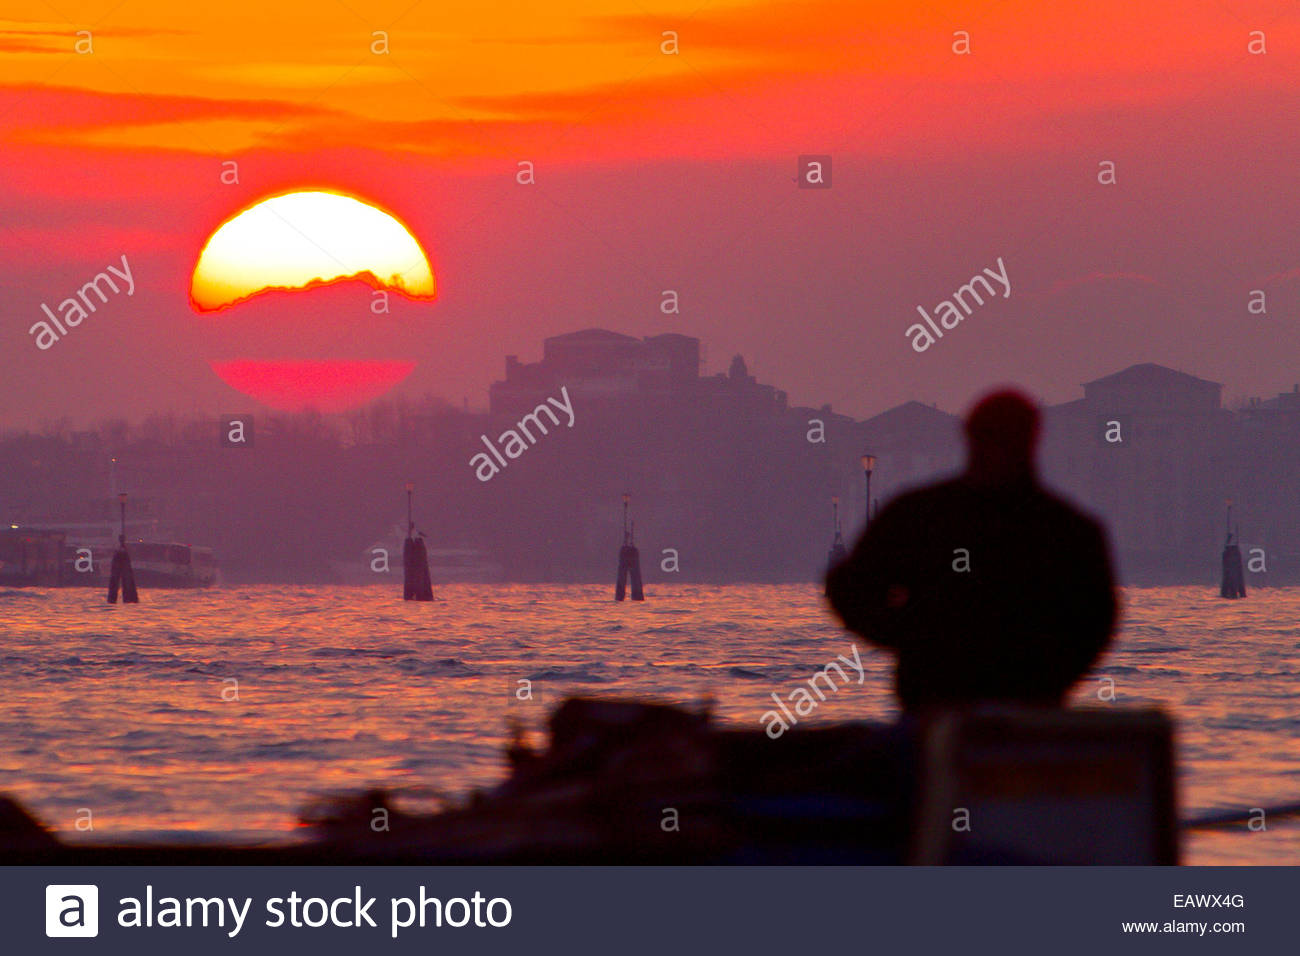 A man in silhouette watches the sunrise over the Grand Canal. Stock Photo